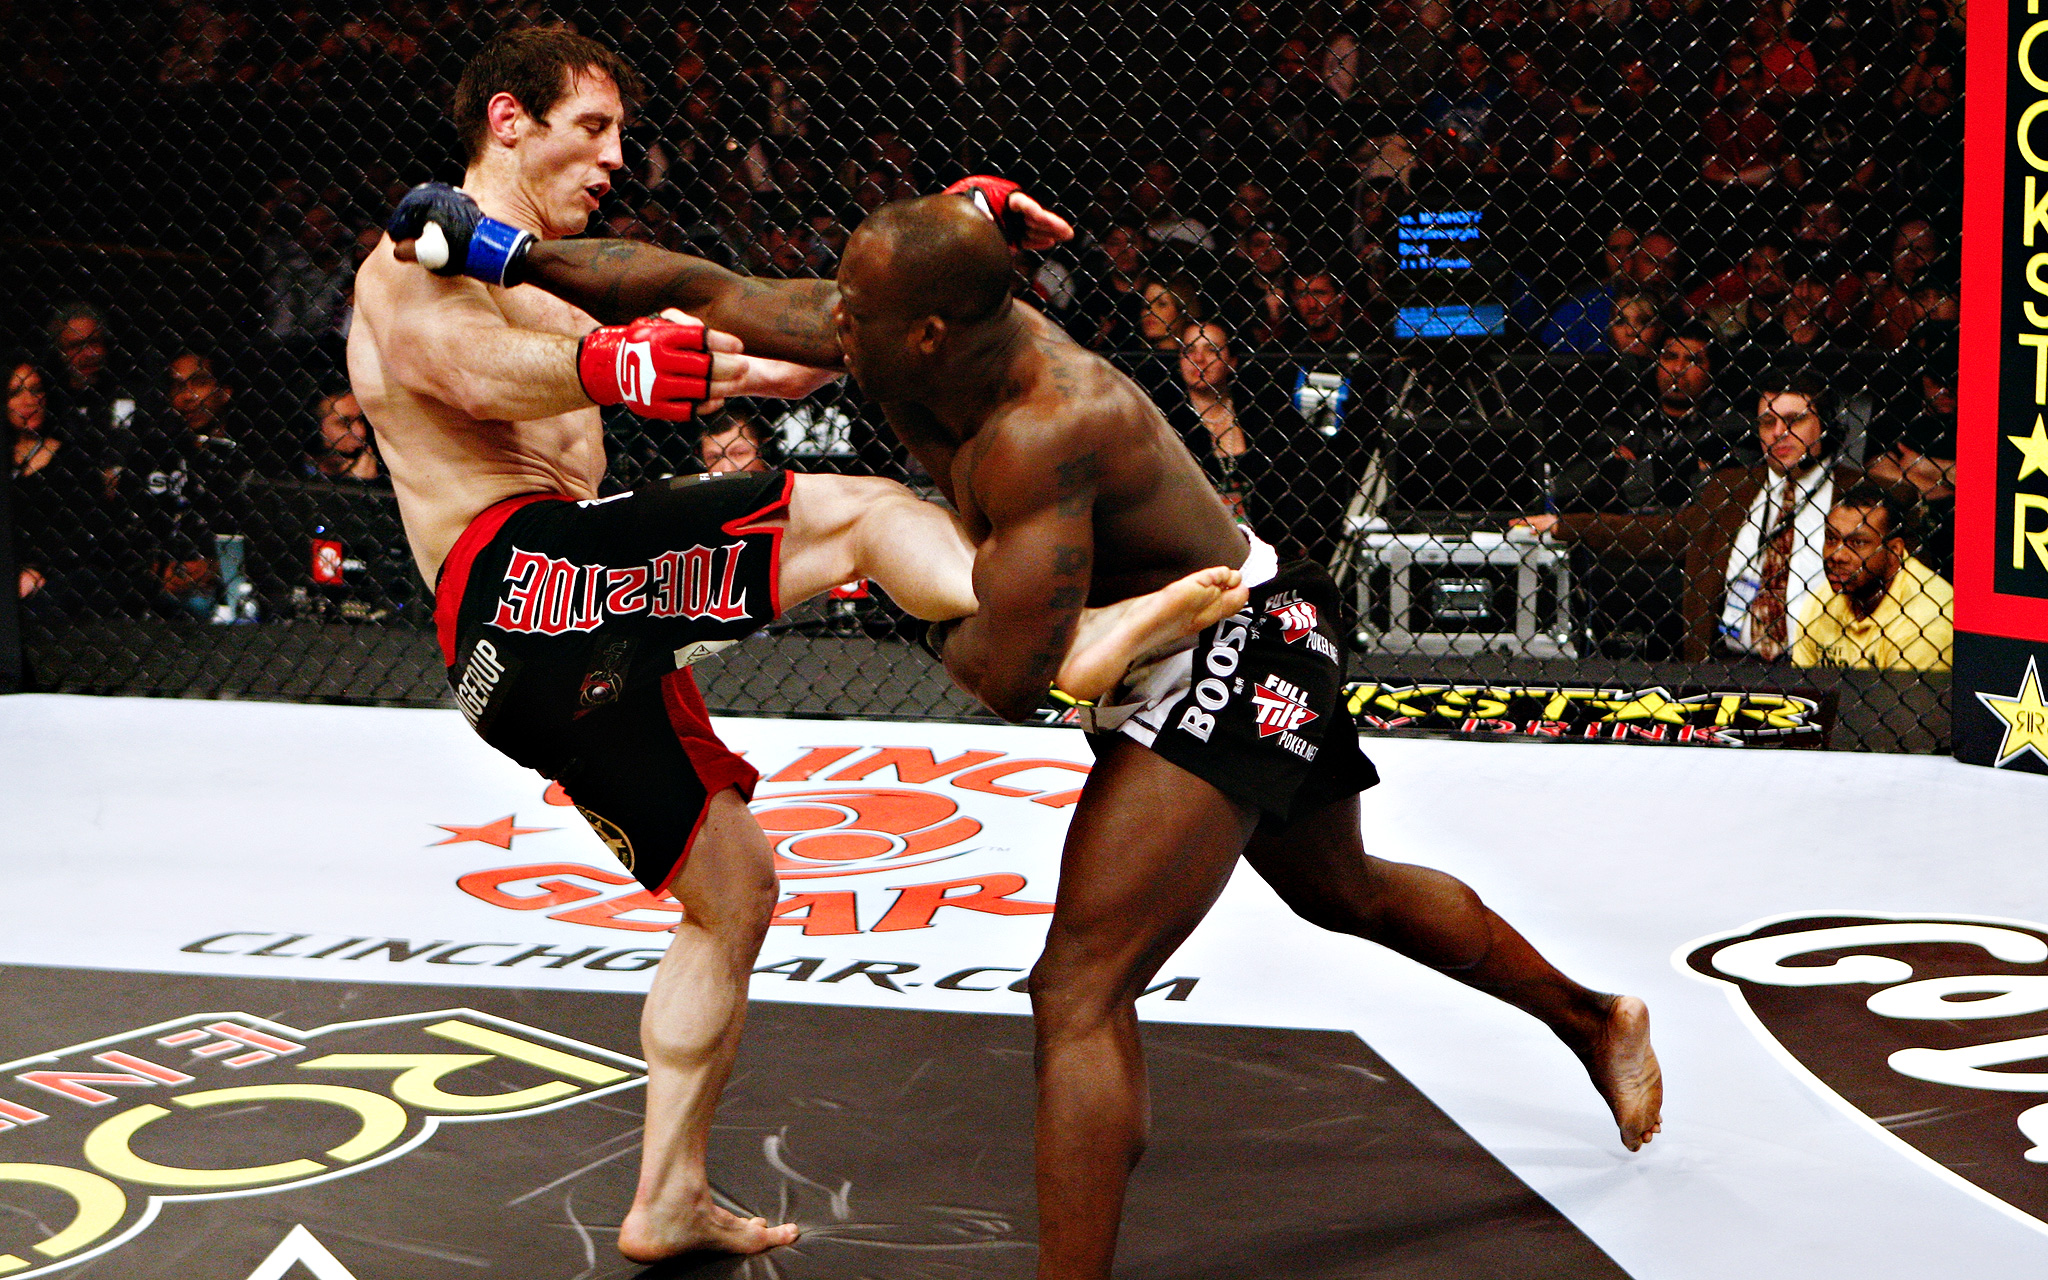 5. Melvin Manhoef